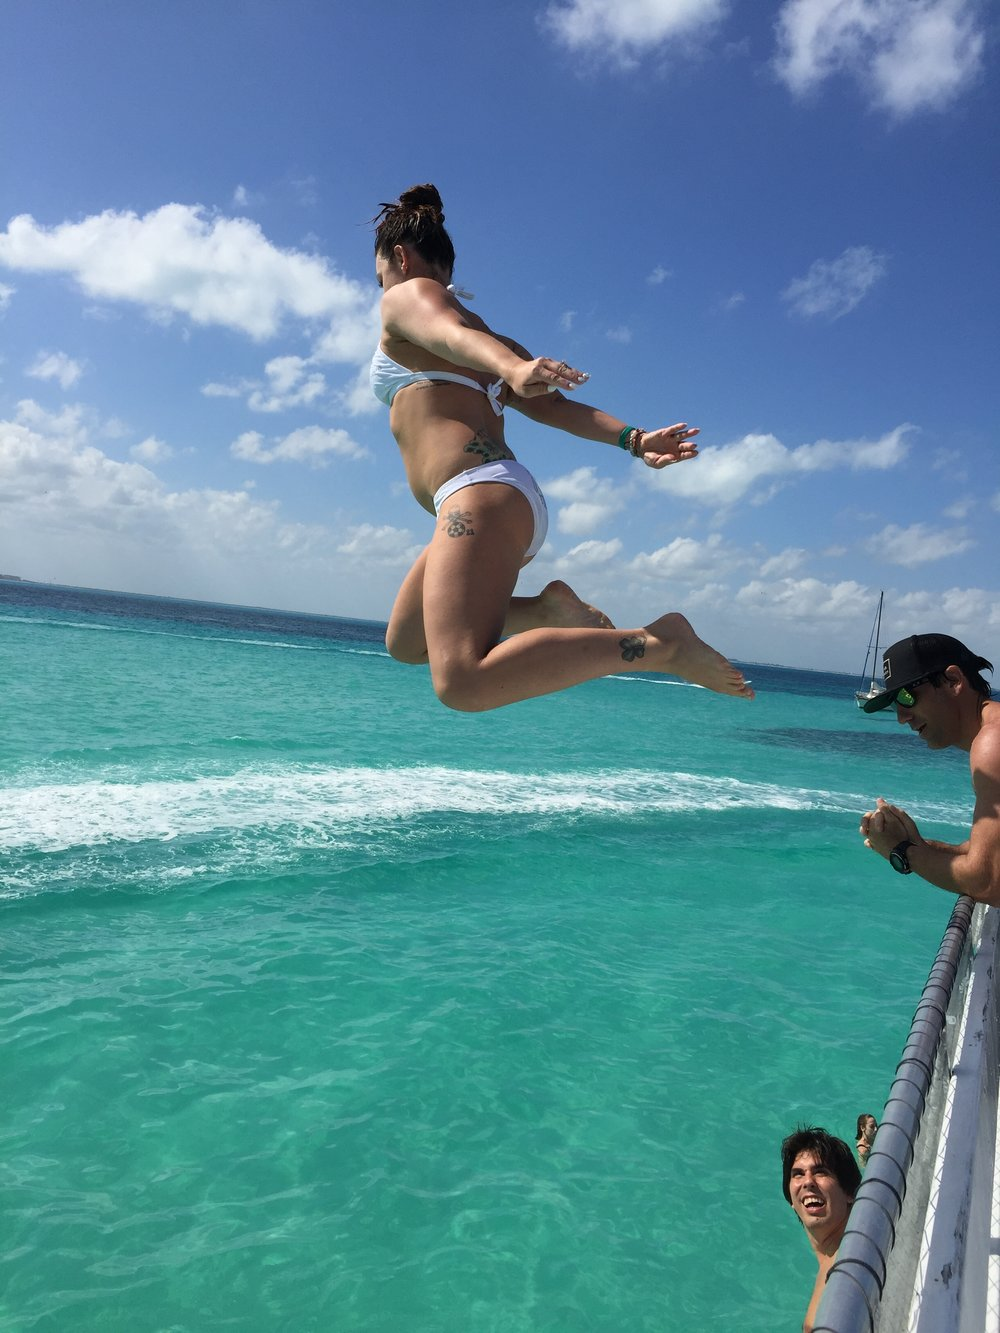 Jumping off a boat in Cancun, February 2017